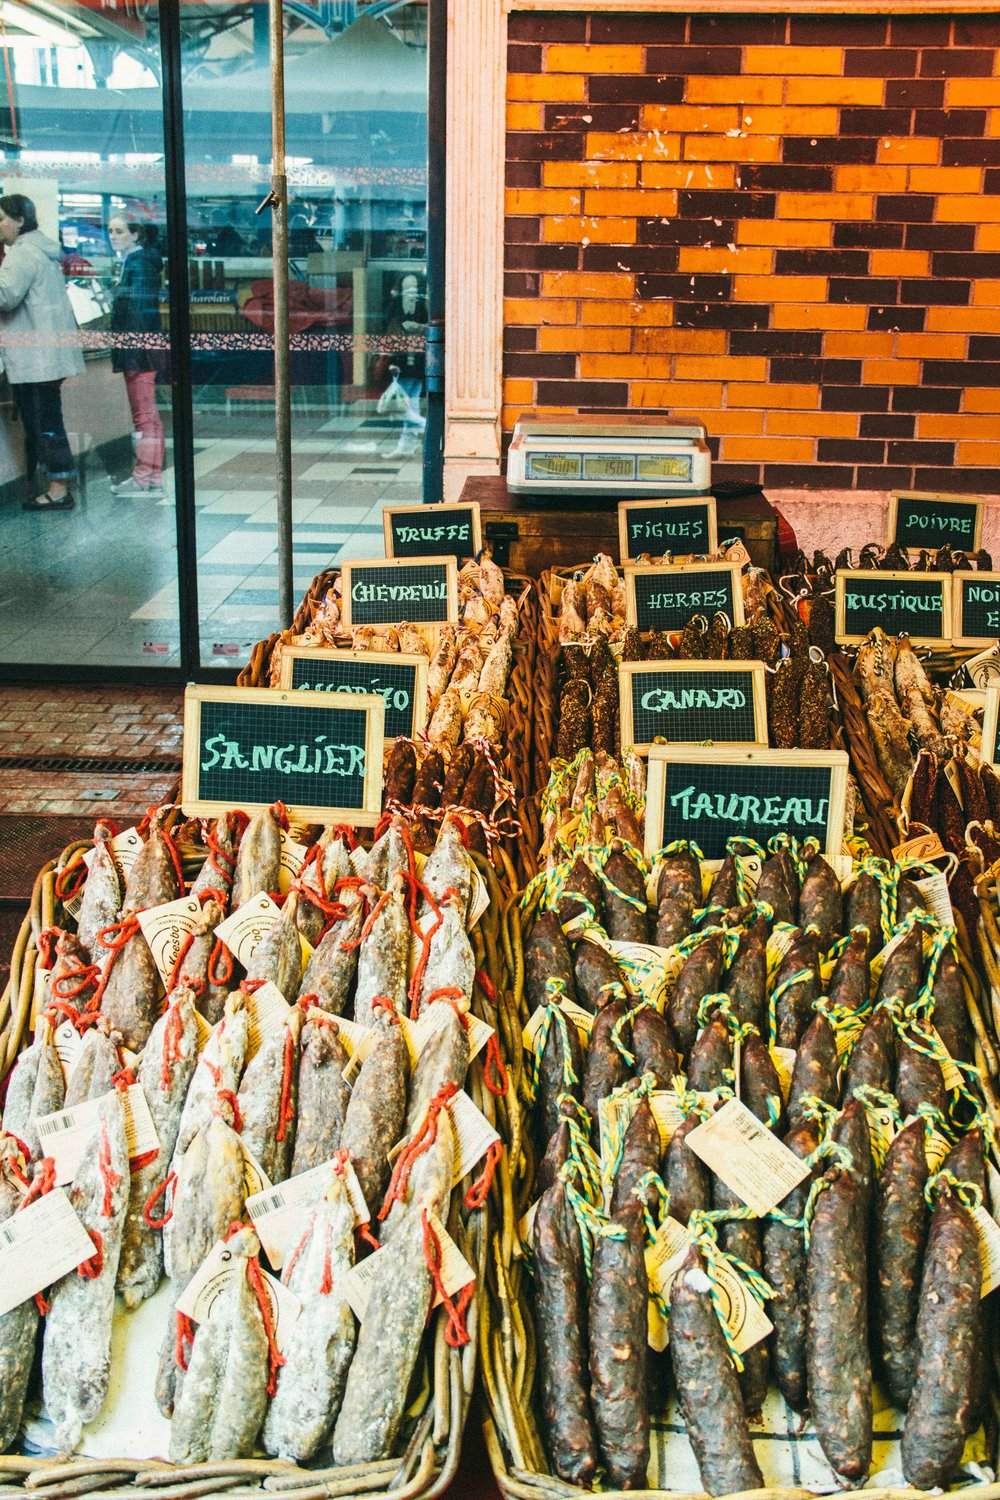 dijon-market-outside-2.jpg